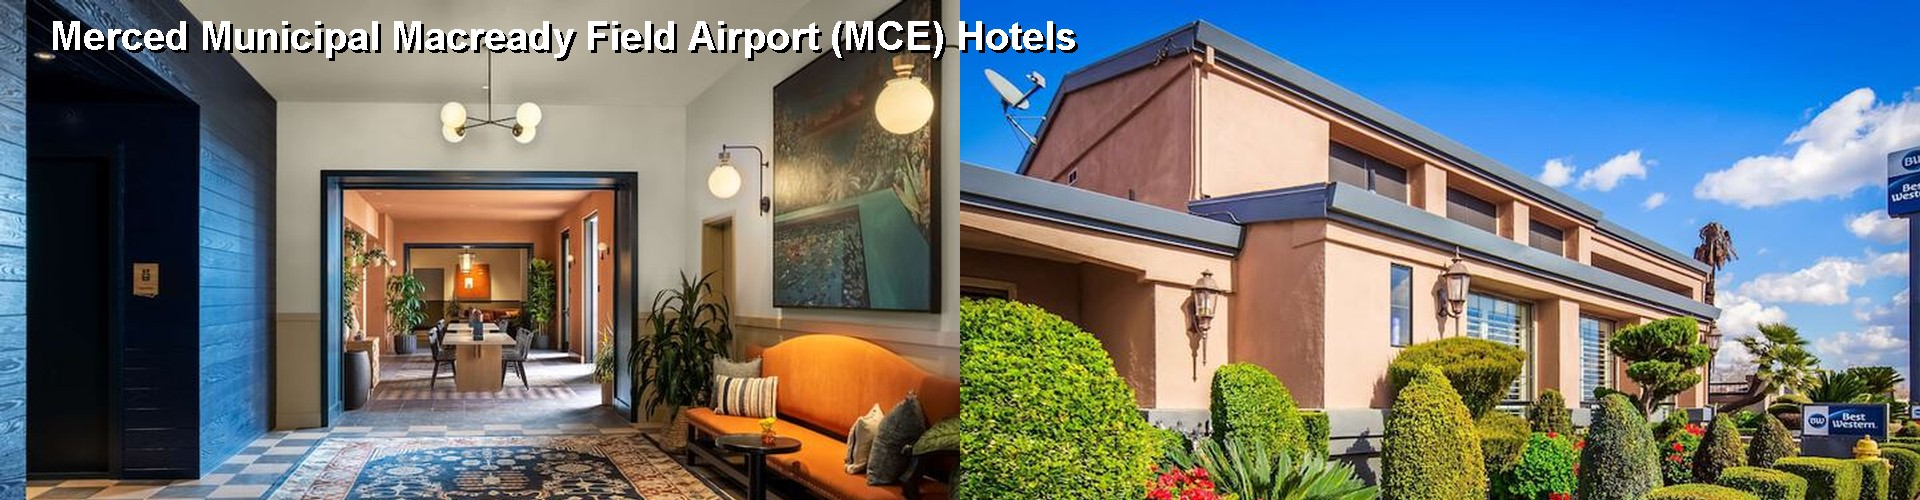 4 Best Hotels near Merced Municipal Macready Field Airport (MCE)